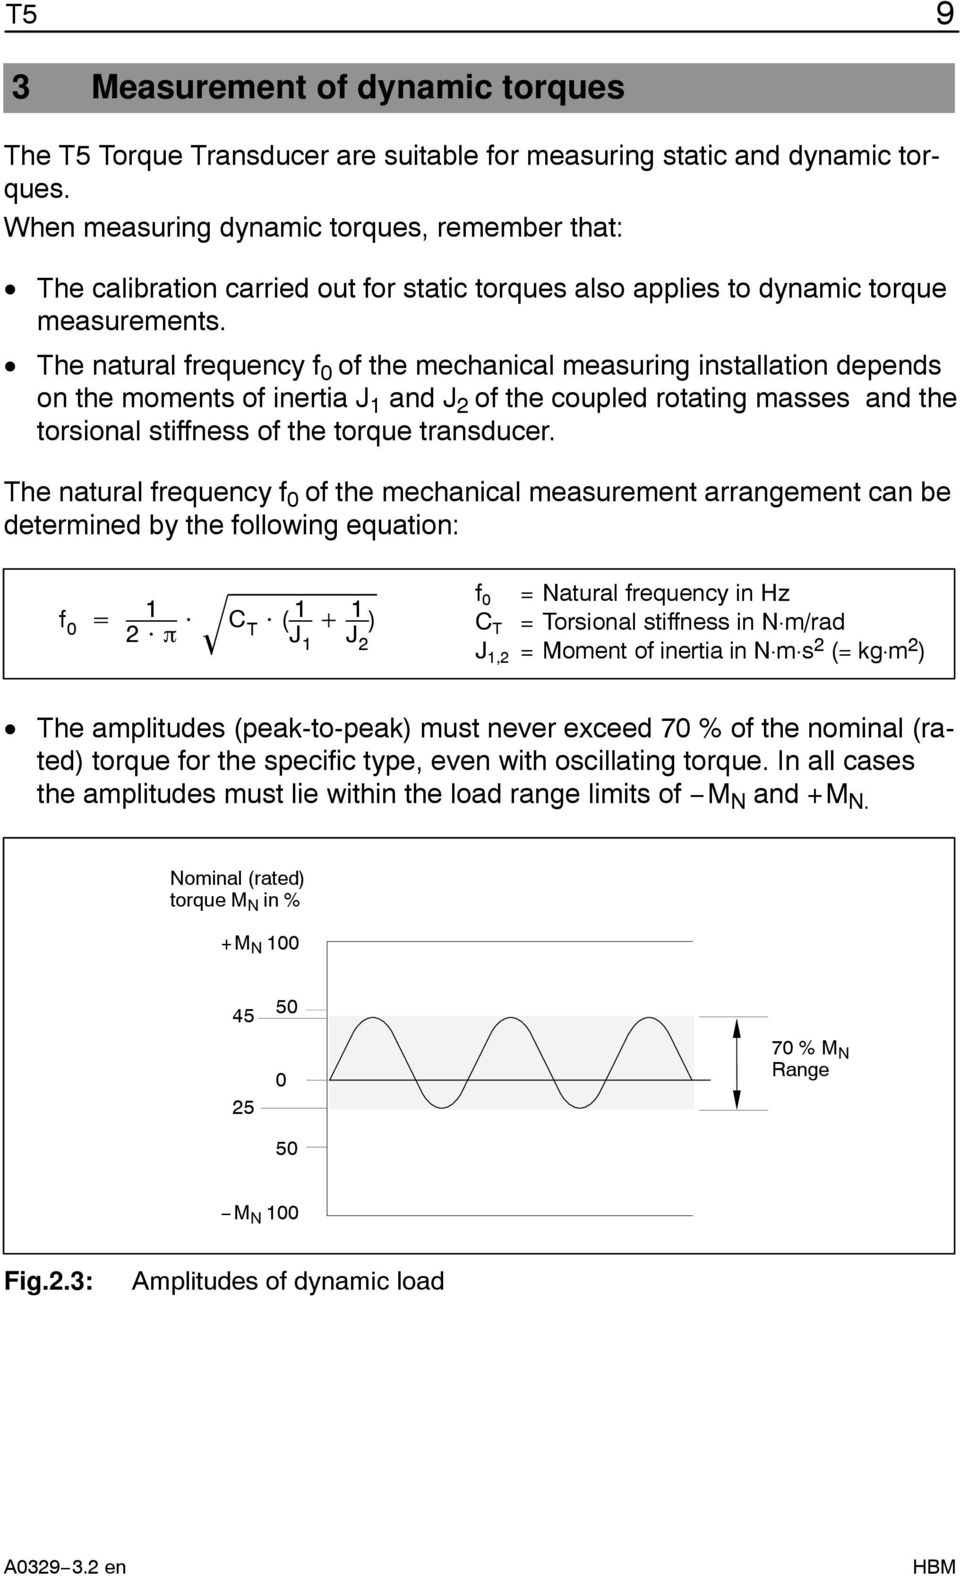 The natural frequency f 0 of the mechanical measuring installation depends on the moments of inertia J 1 and J 2 of the coupled rotating masses and the torsional stiffness of the torque transducer.